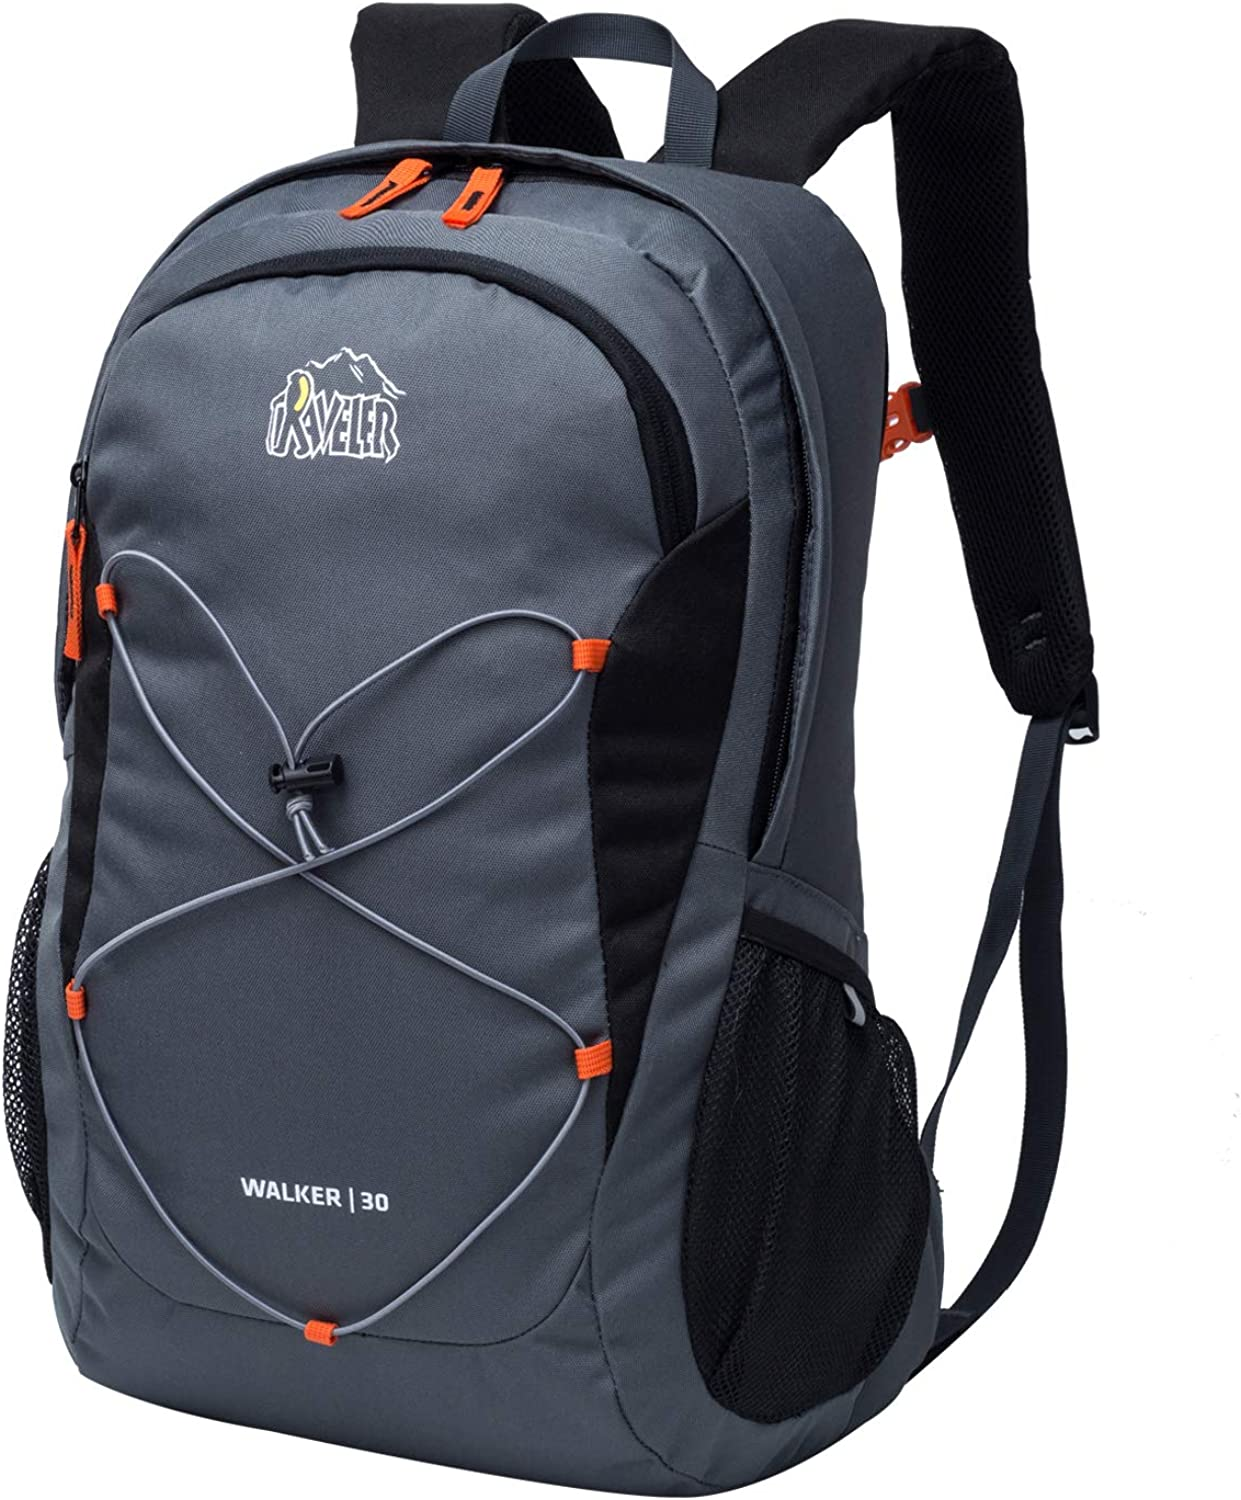 Aveler All stores are sold 2021 autumn and winter new Unisex lightweight Casual Daypack Wate for and Man Women